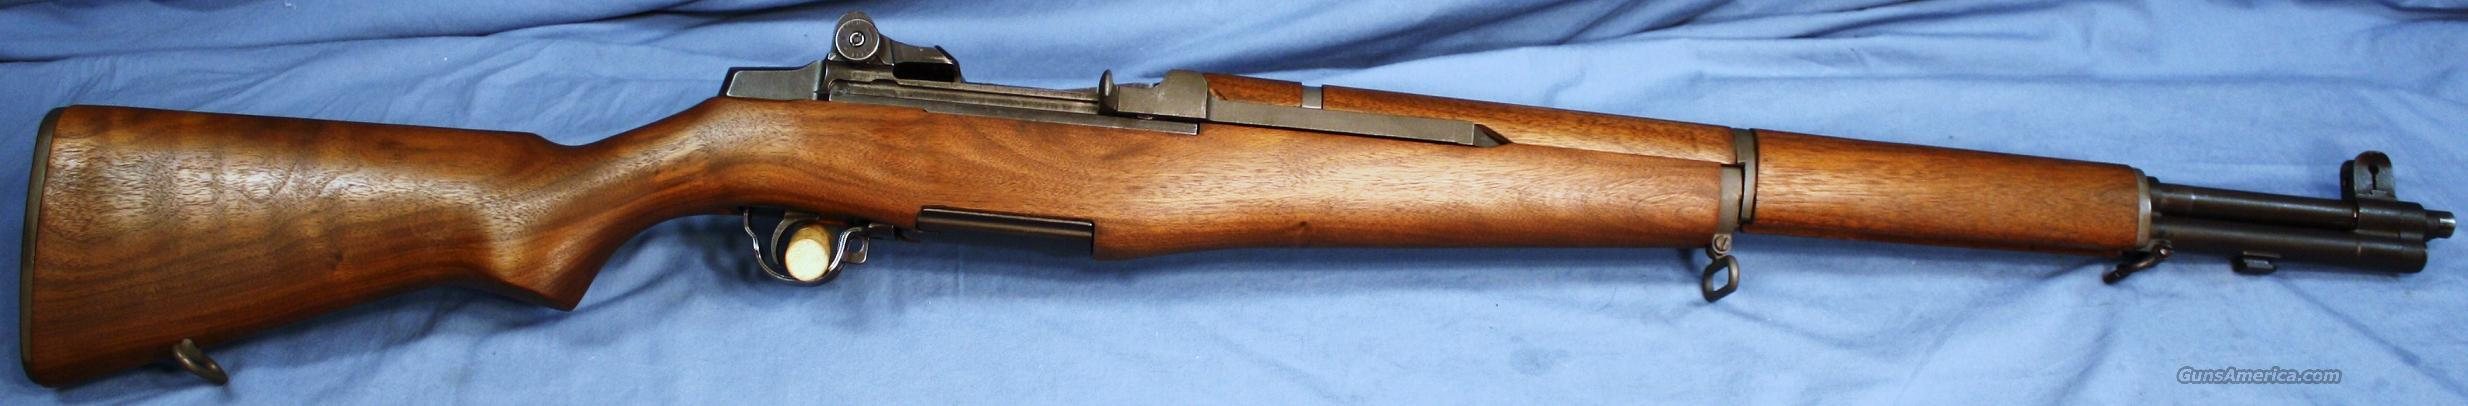 U.S. Army M1 Garand Semi-Automatic Rifle .30-06 by H&R 1955  Guns > Rifles > Military Misc. Rifles US > M1 Garand